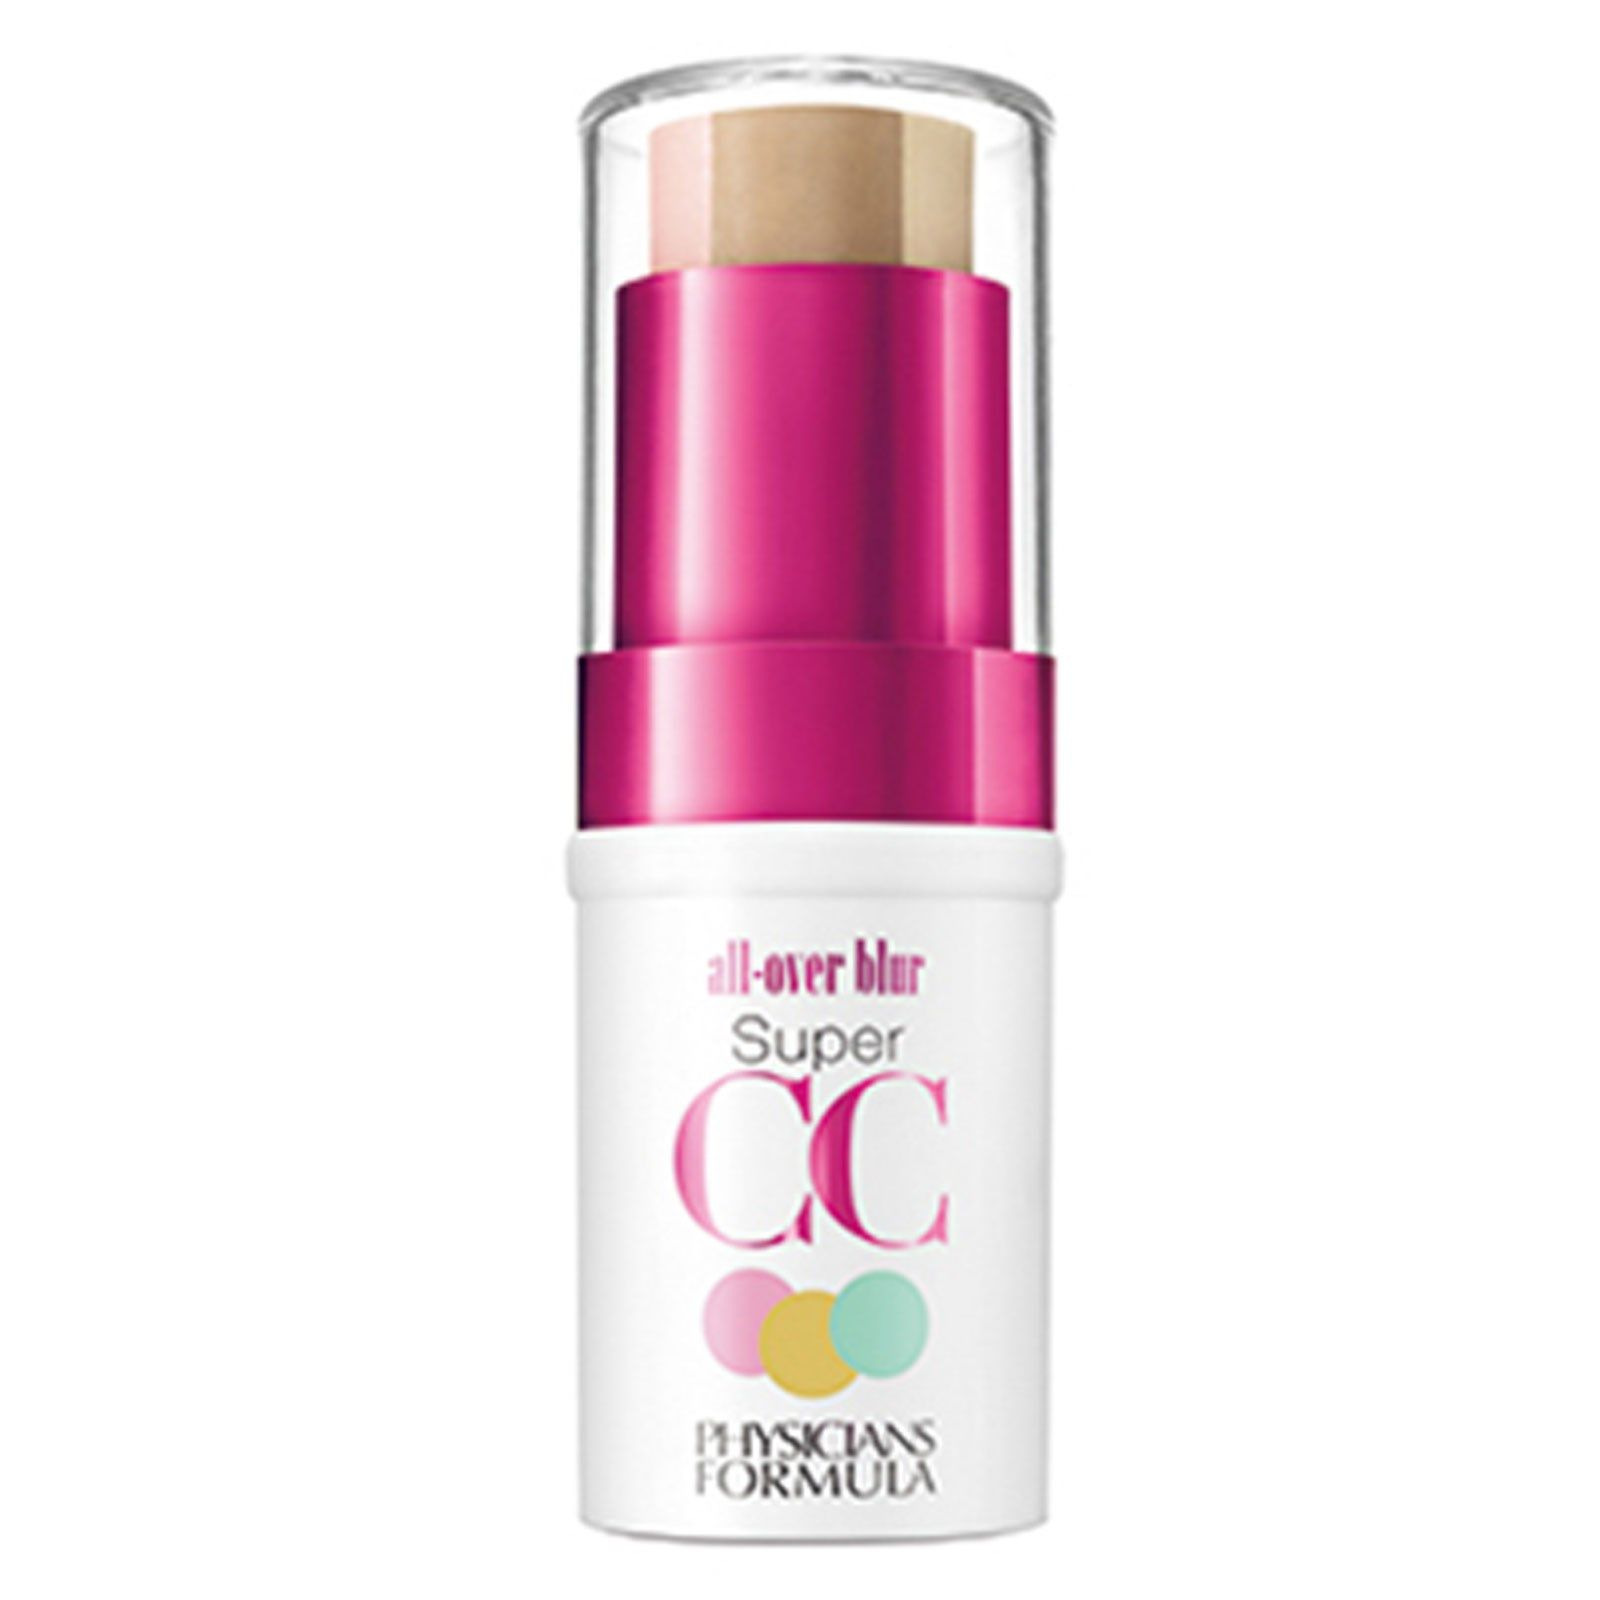 real techniques brushes international shipping  make up discount coupon code:JWH658,$10 OFF iHerb Physician's Formula, Inc., Super CC, Color-Correction + Care, All-Over Blur Primer Stick, Light/Medium, 0.47 oz (13.5 g)